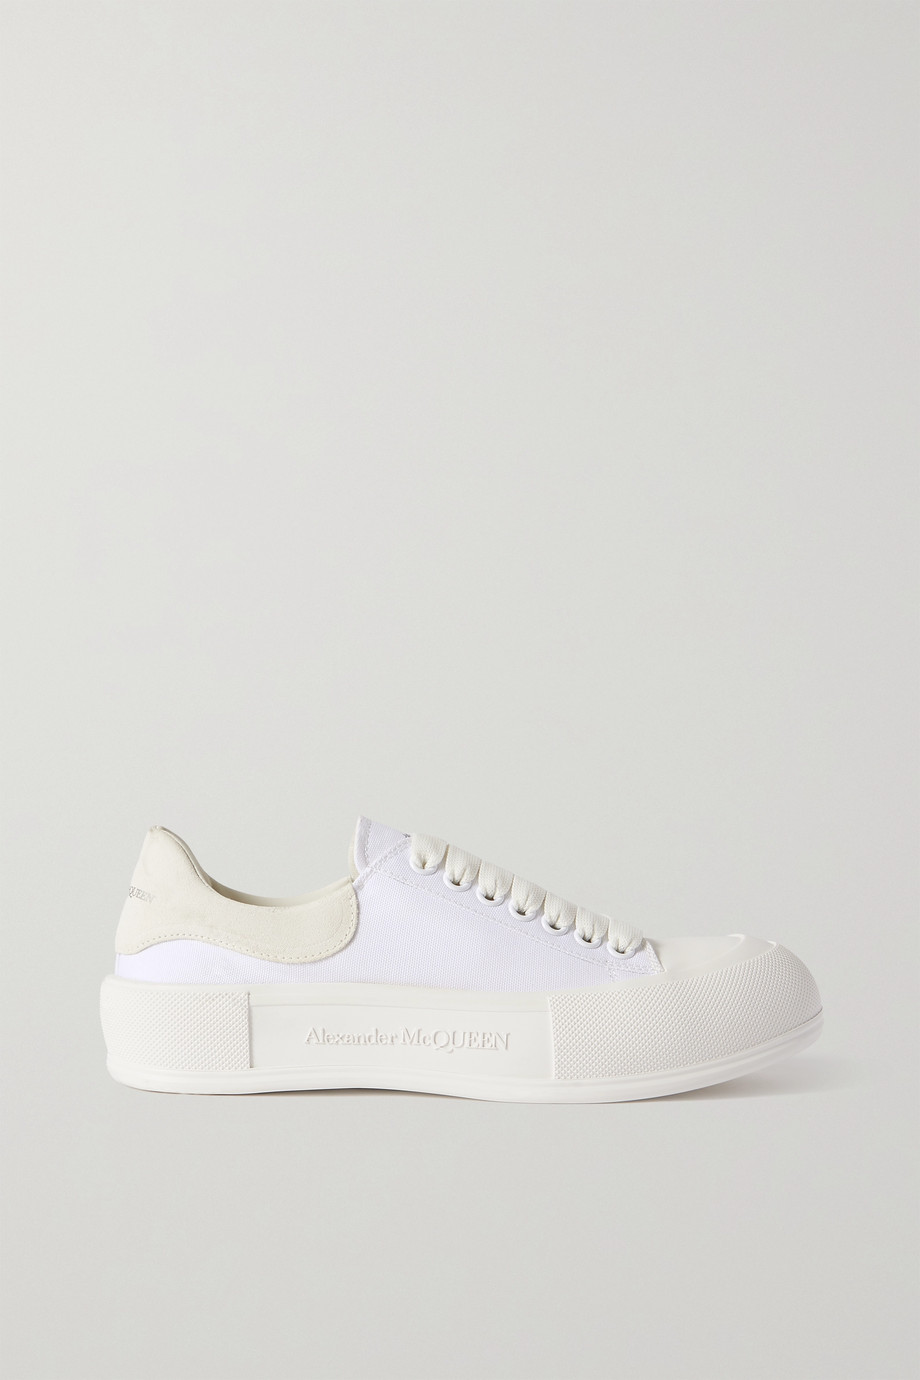 Alexander McQueen Suede-trimmed canvas exaggerated-sole sneakers